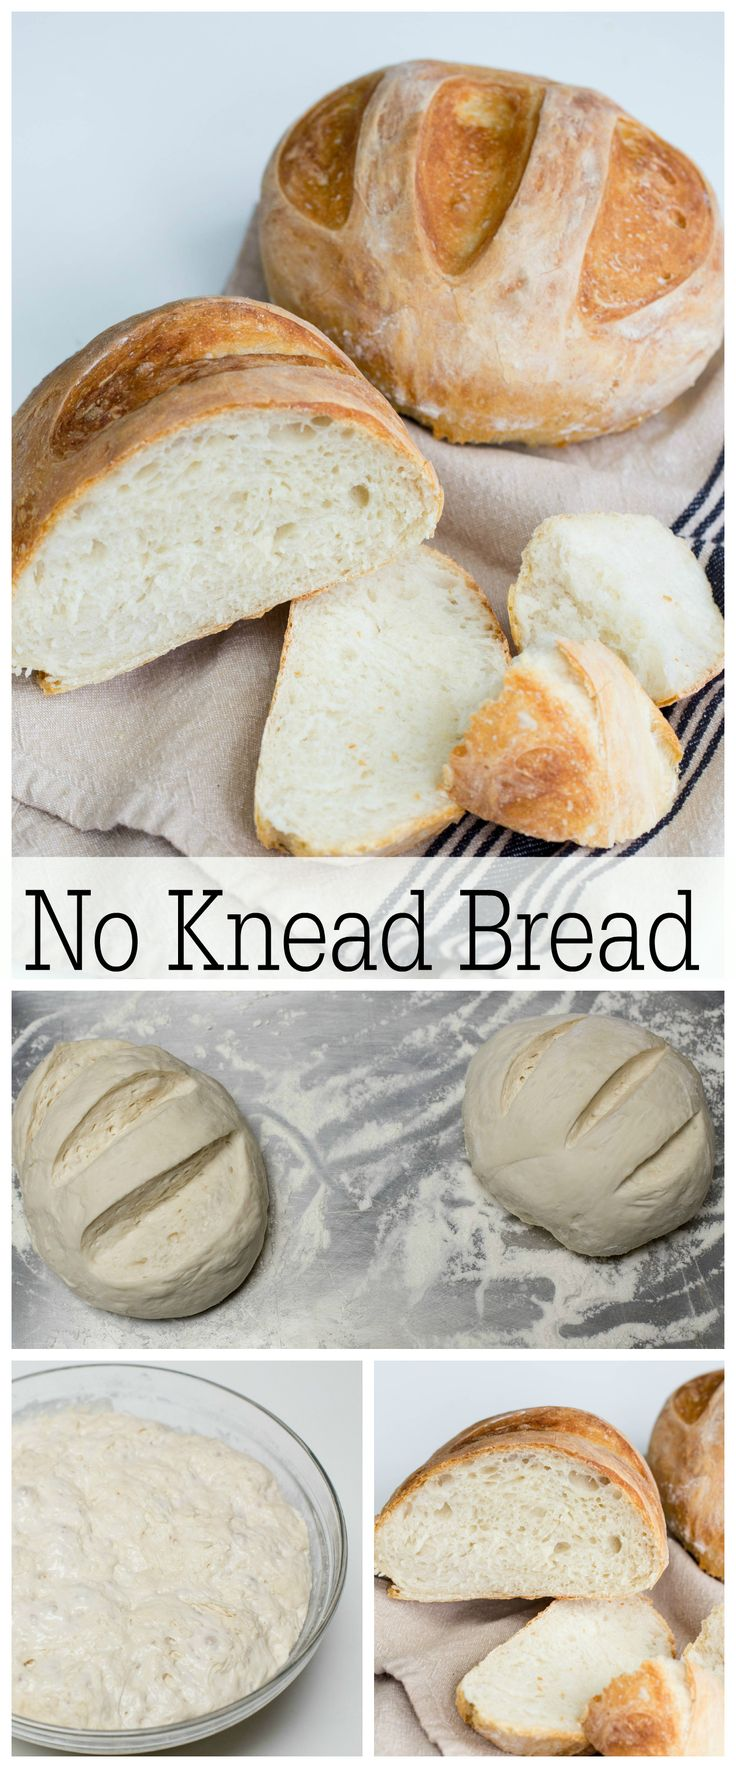 I think so highly of this bread recipe that I think every person out there should try it.